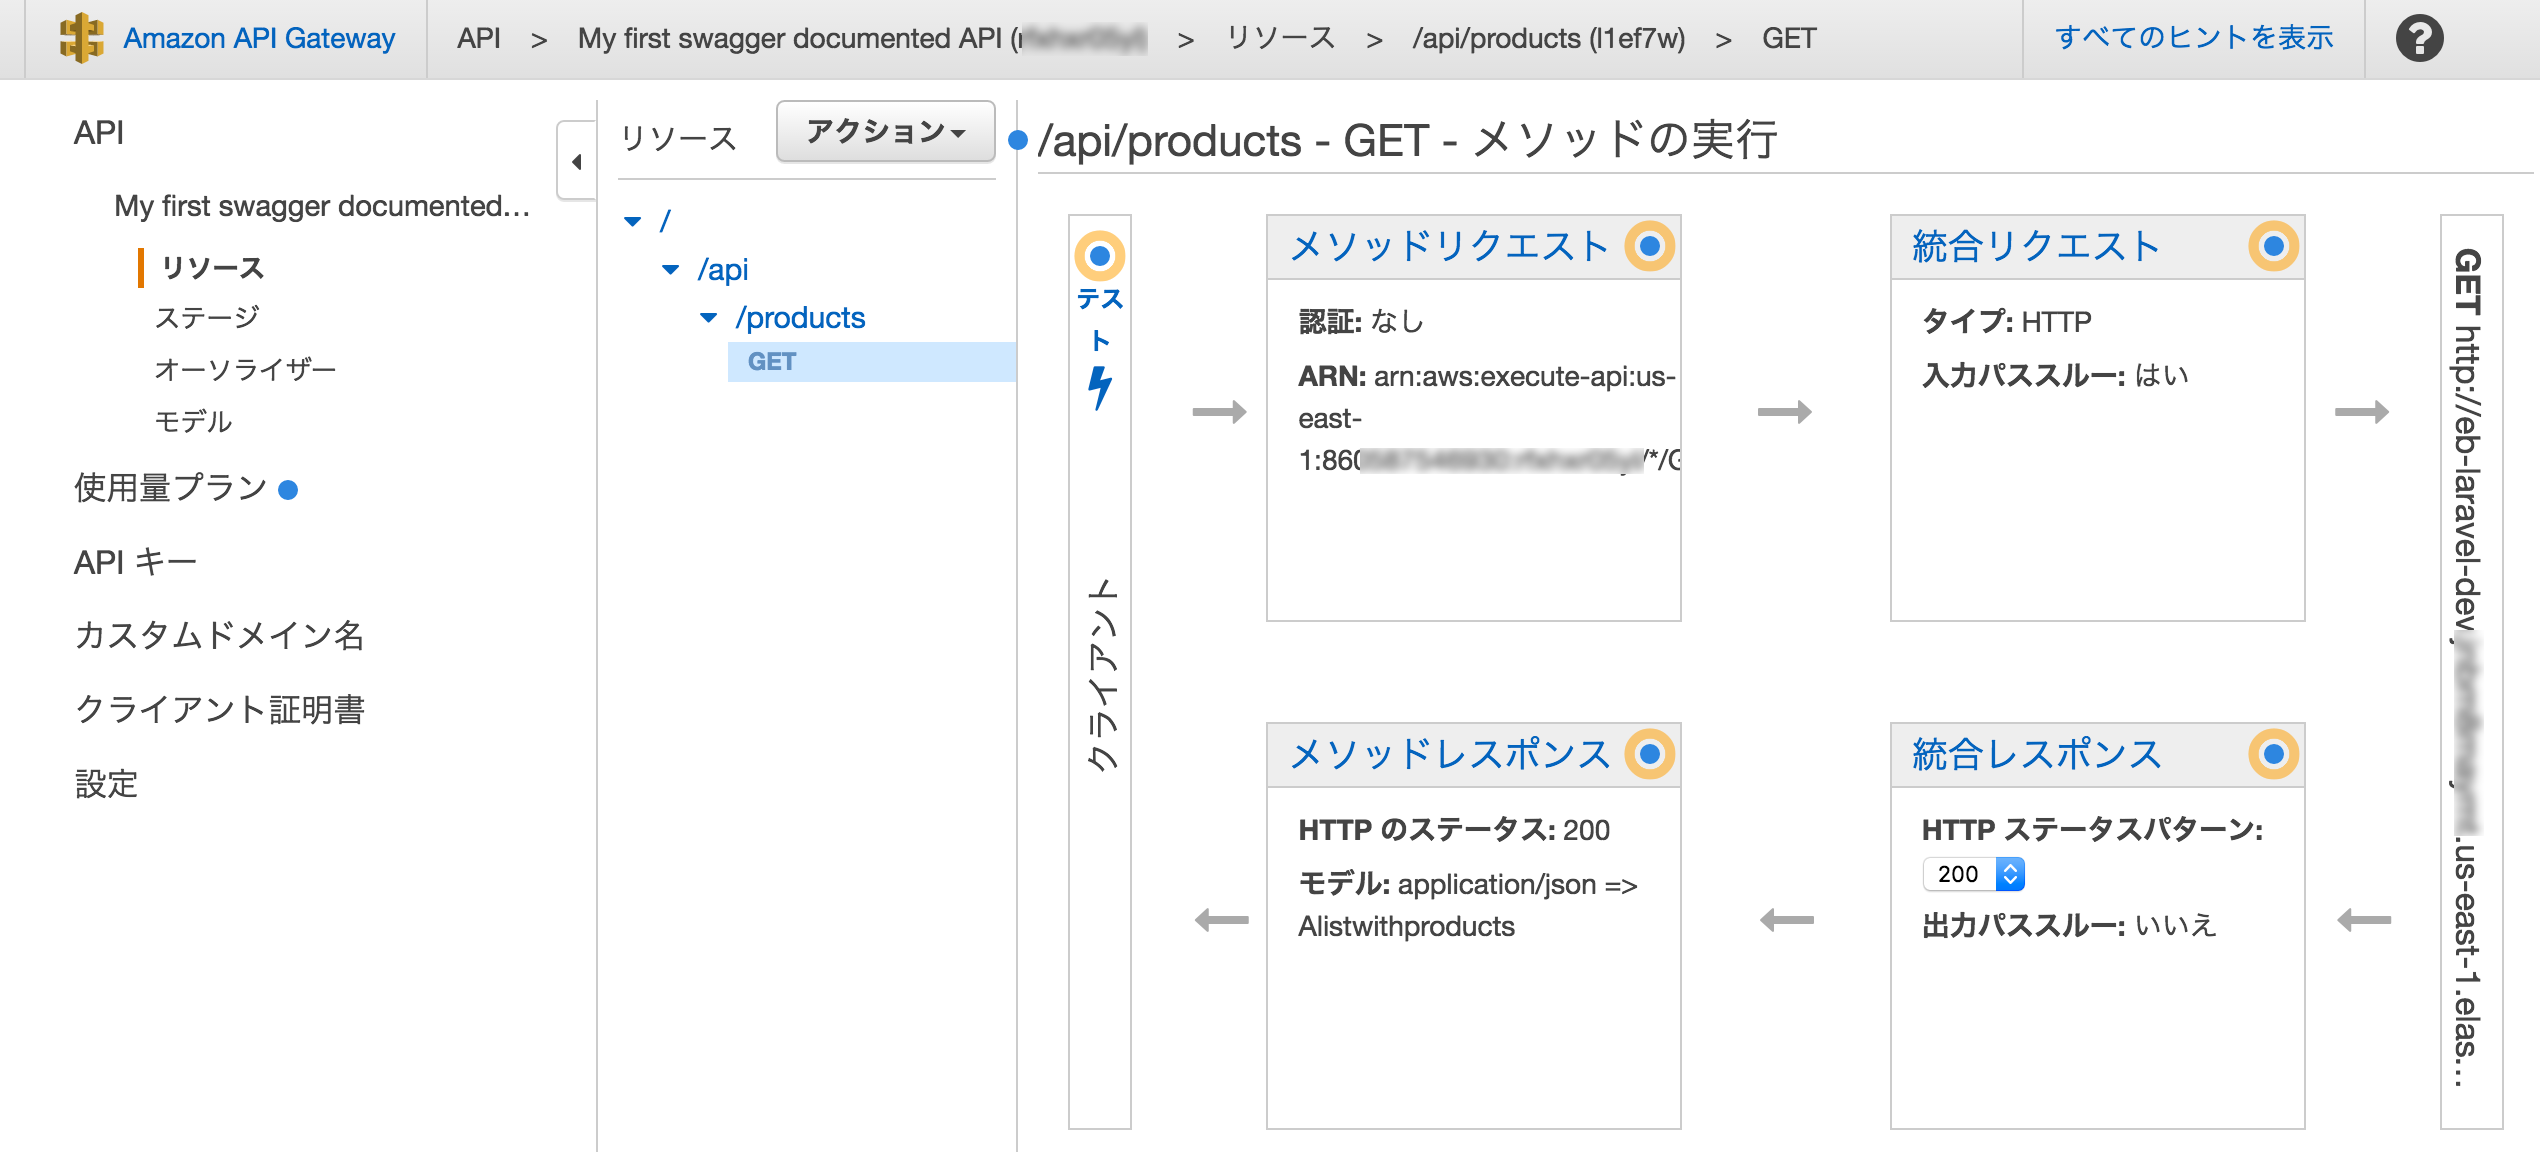 aws-api-gateway-resource-imported-from-swagger-file